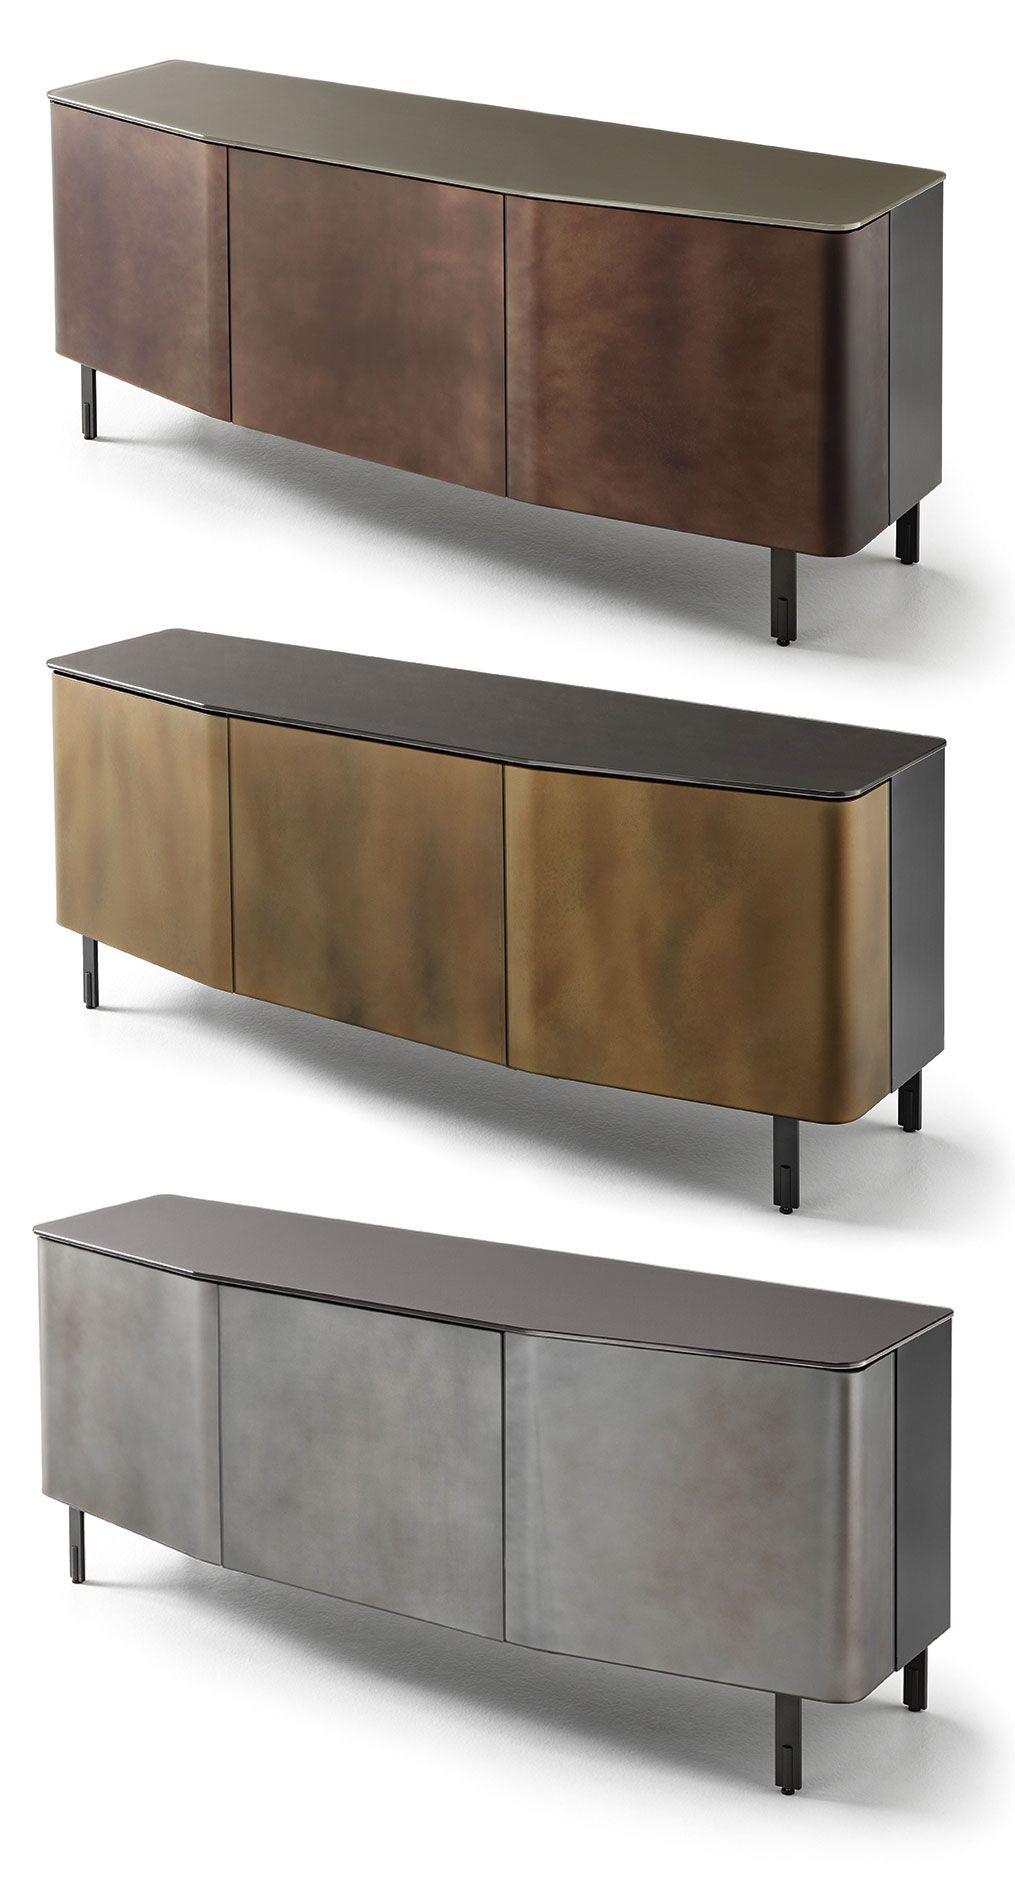 Plana Sideboard, Designed By Studio Klass For Fiam Italia -